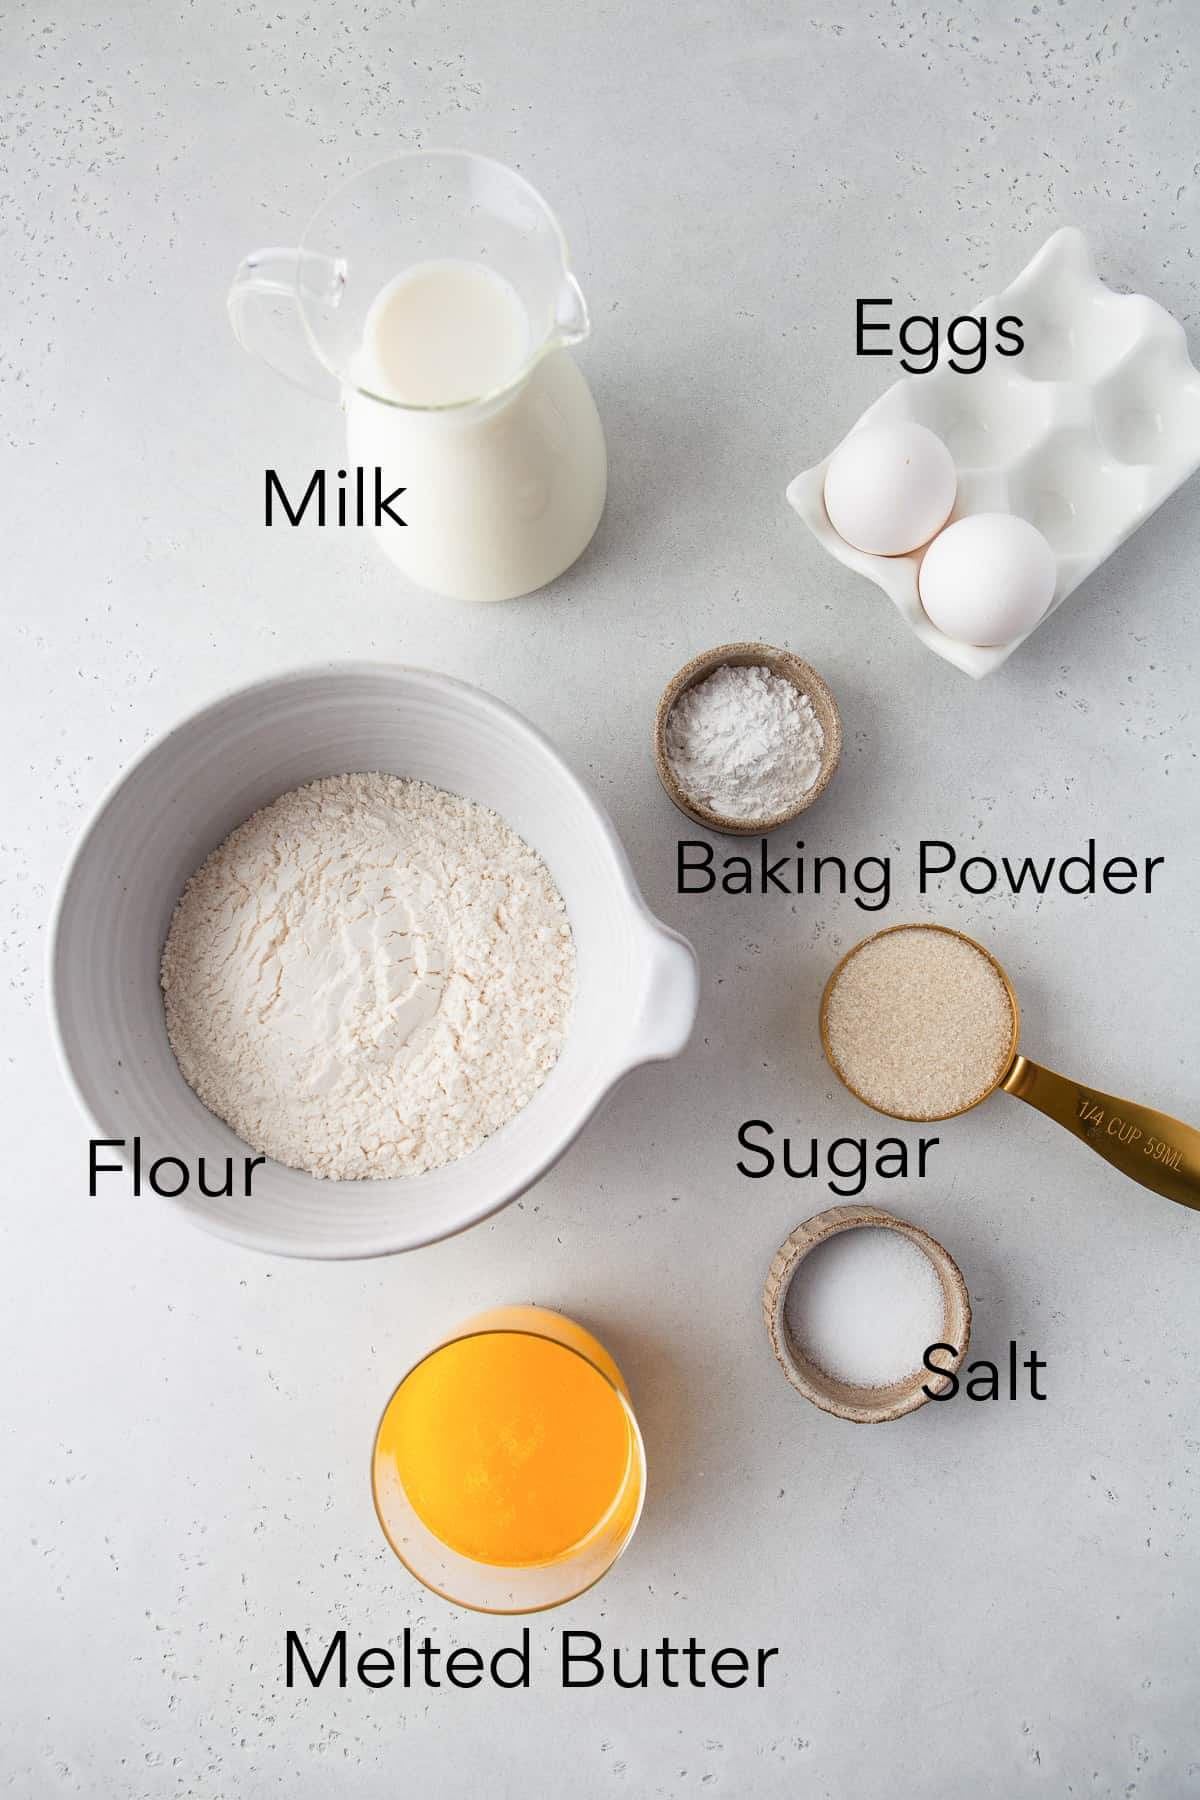 milk, eggs, baking powder, flour, sugar, salt, and butter in separate containers